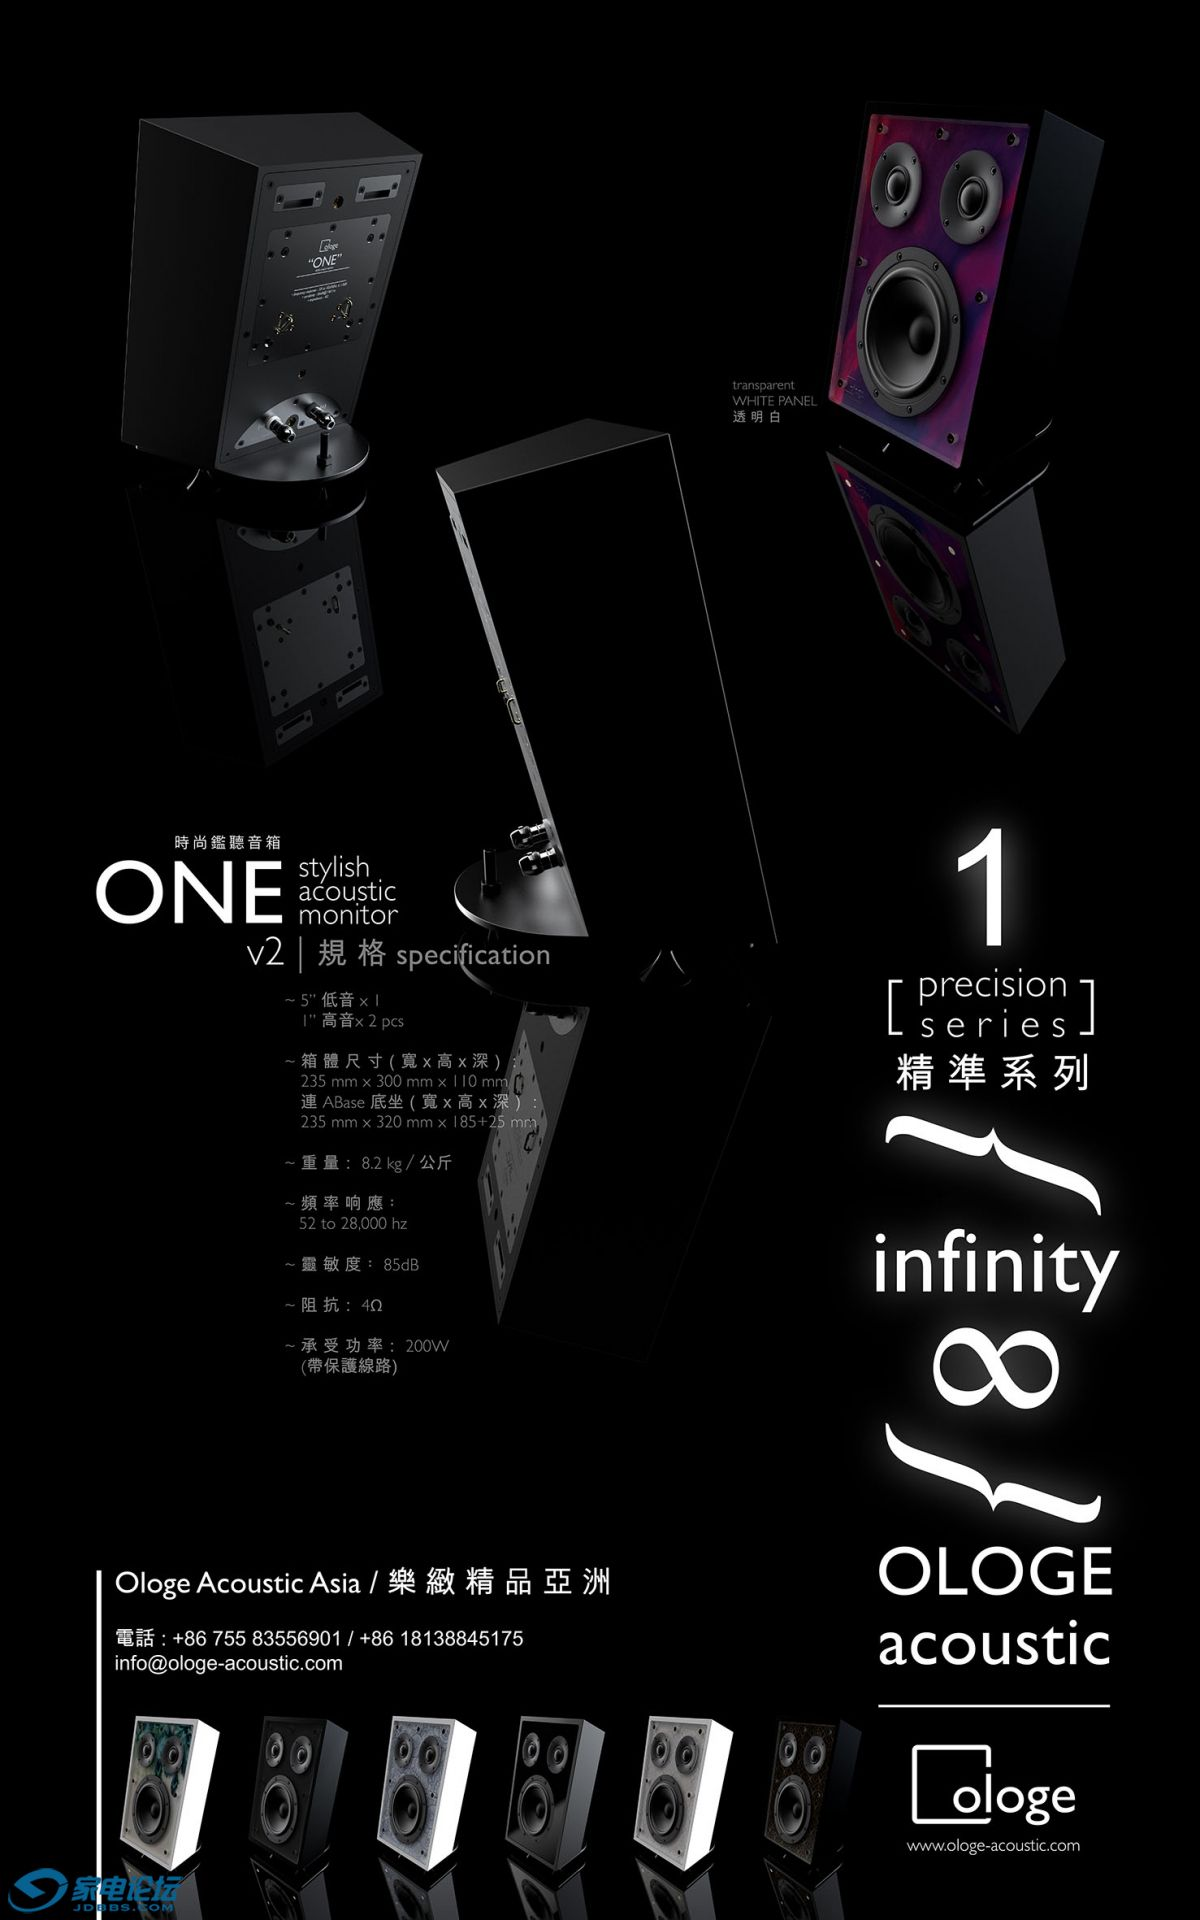 infinity layout - chinese-14.jpg